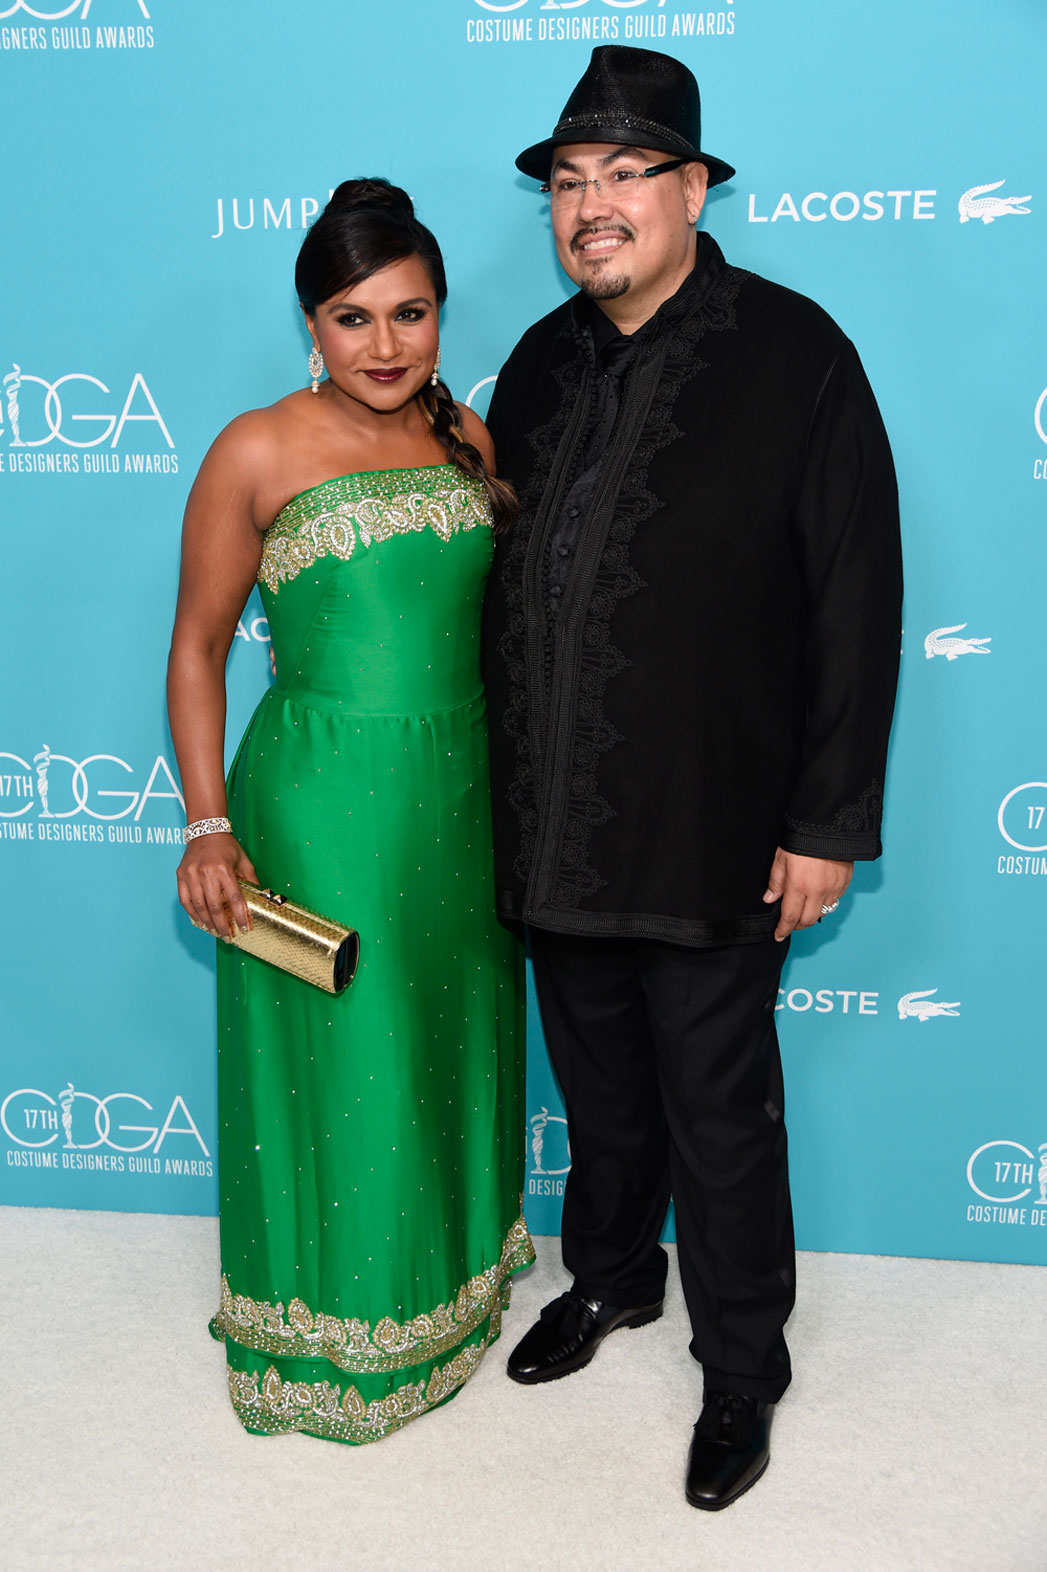 The Story Behind Mindy Kaling S Costume Designers Guild Awards Dress Exclusive Hollywood Reporter